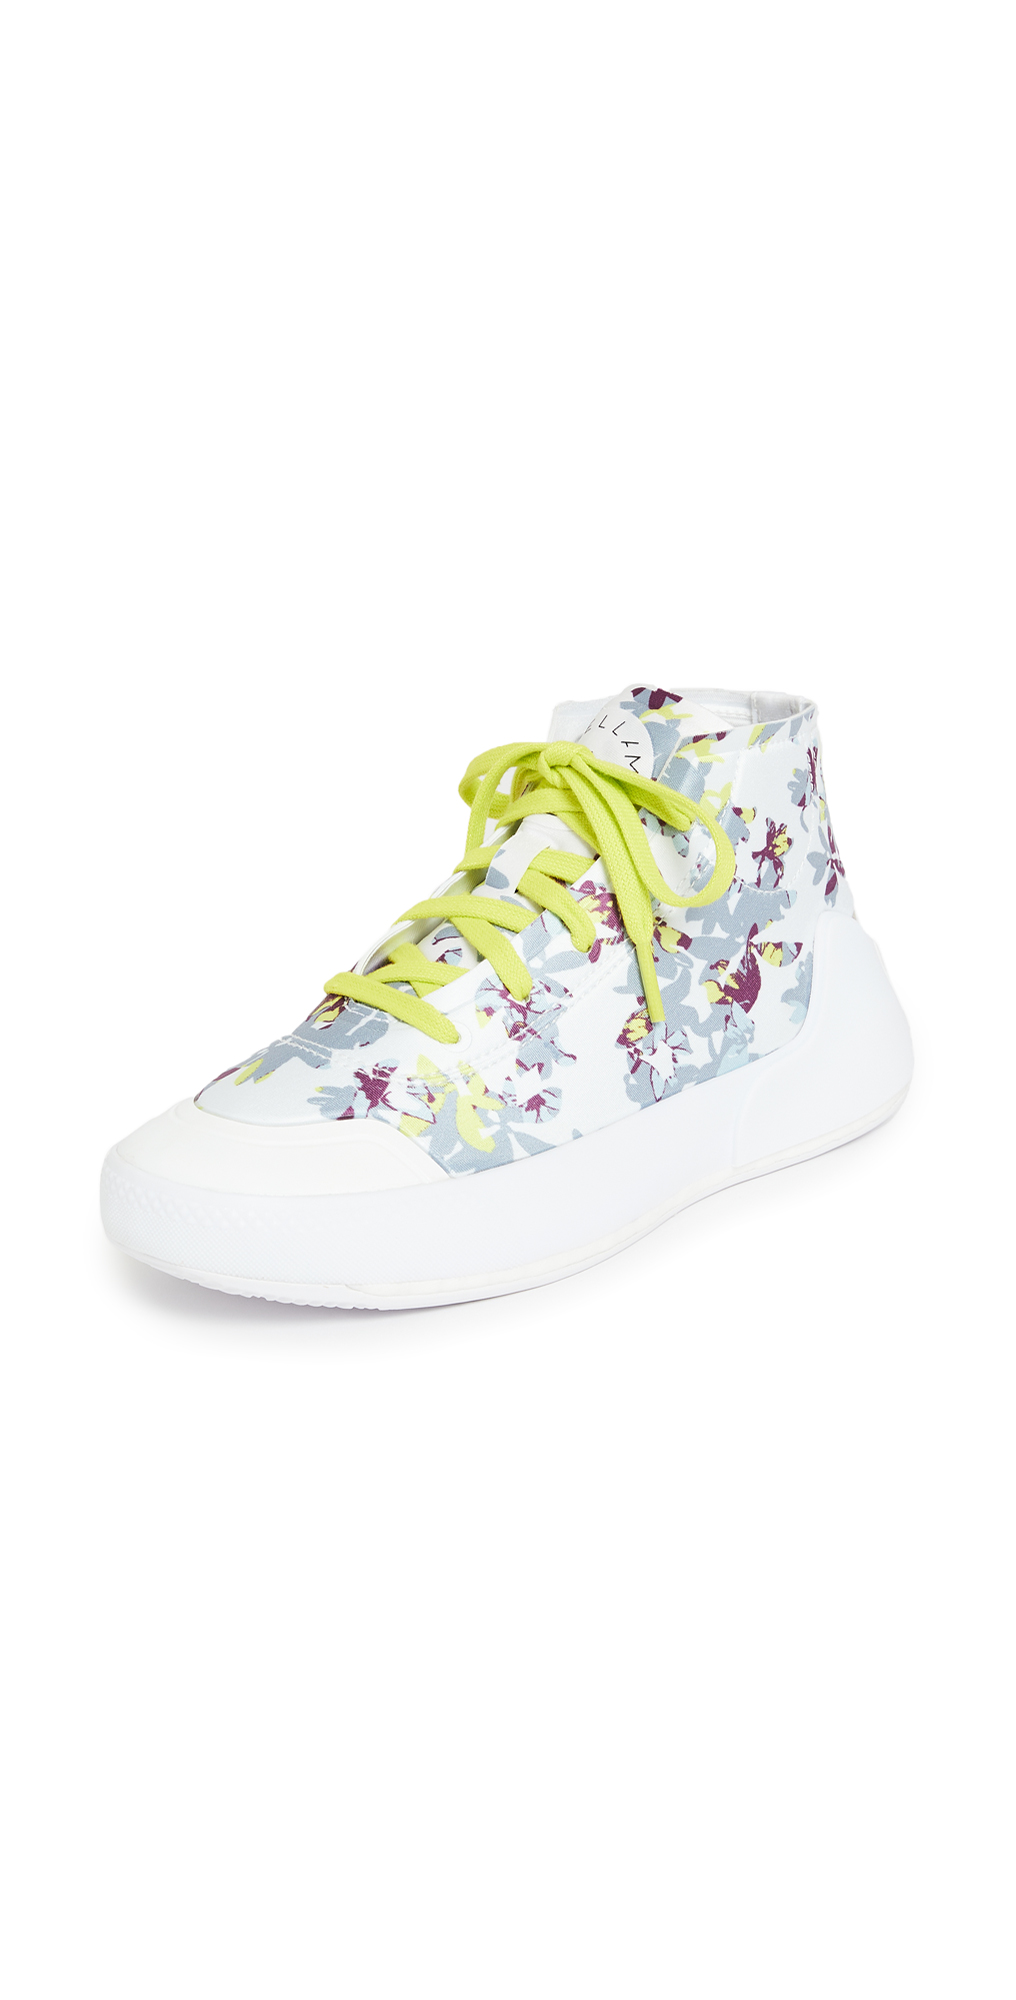 adidas by Stella McCartney Asmc Treino Mid Printed Sneakers